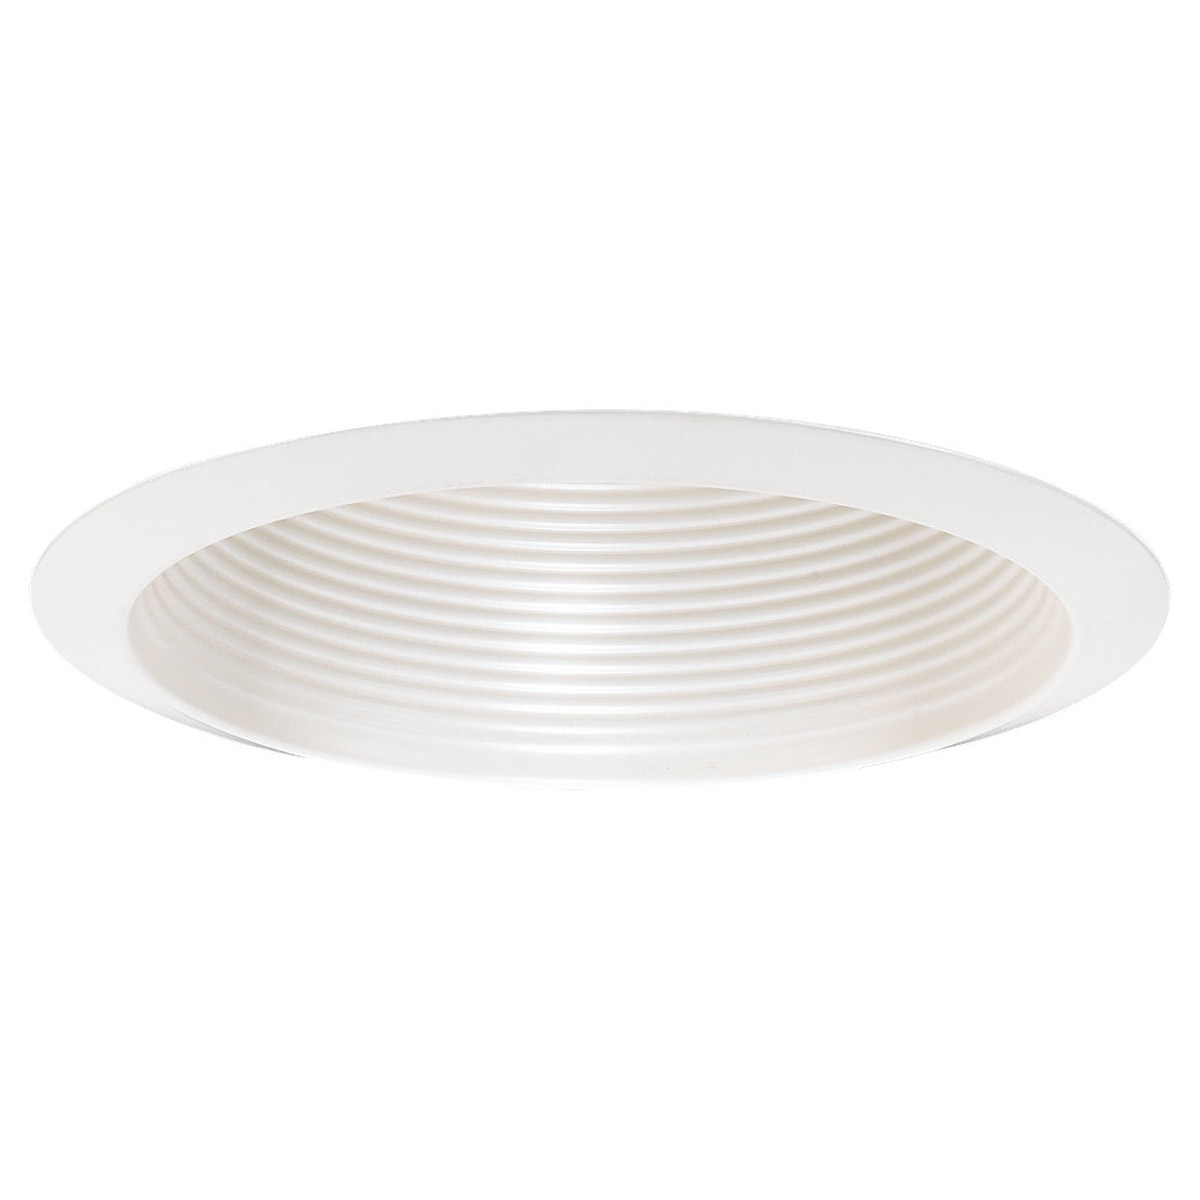 Sea Gull Lighting Signature Recessed Trim Only in White 11154AT-14